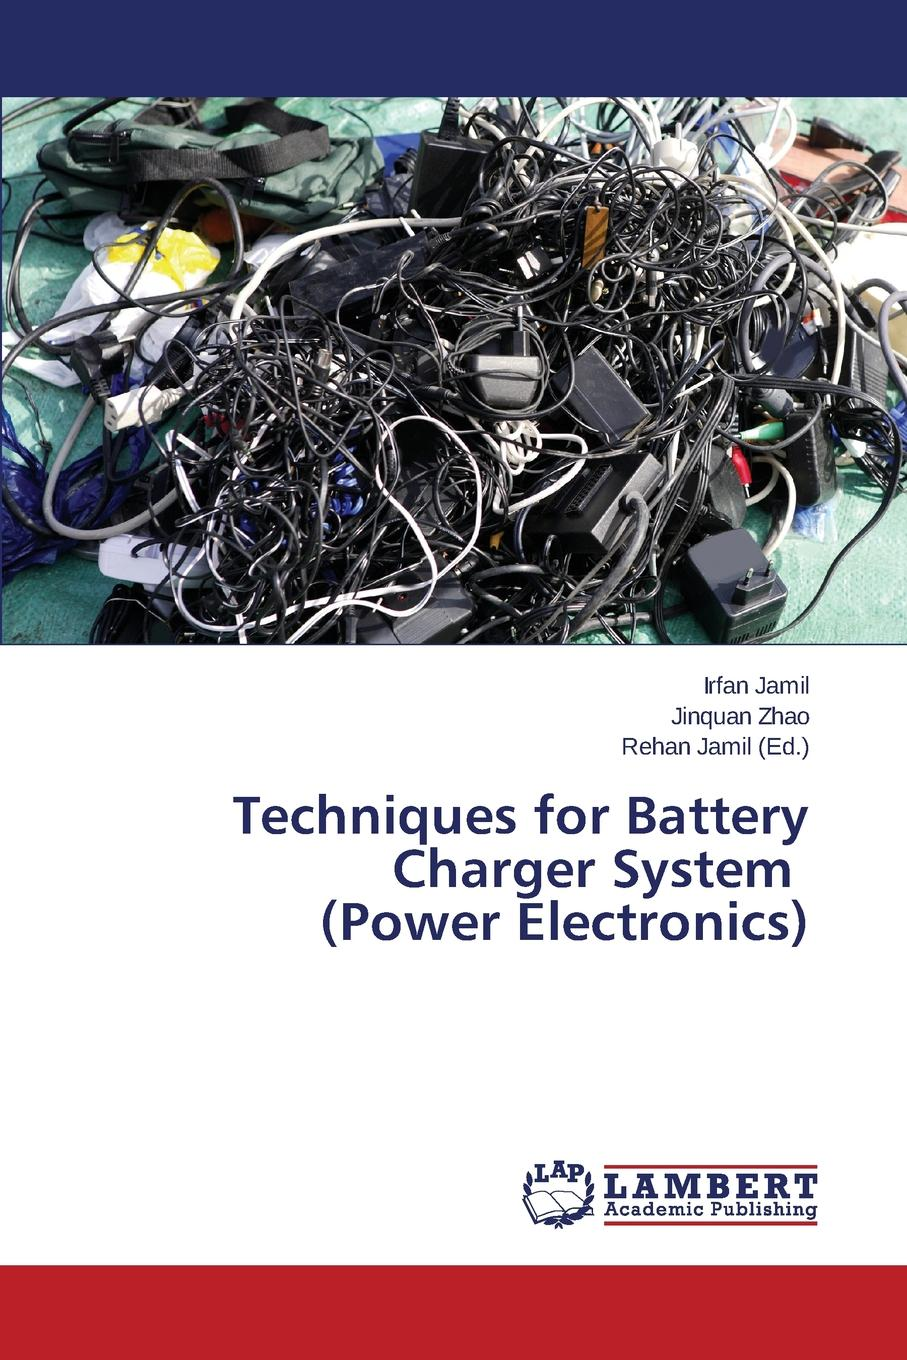 Jamil Irfan, Zhao Jinquan Techniques for Battery Charger System (Power Electronics)